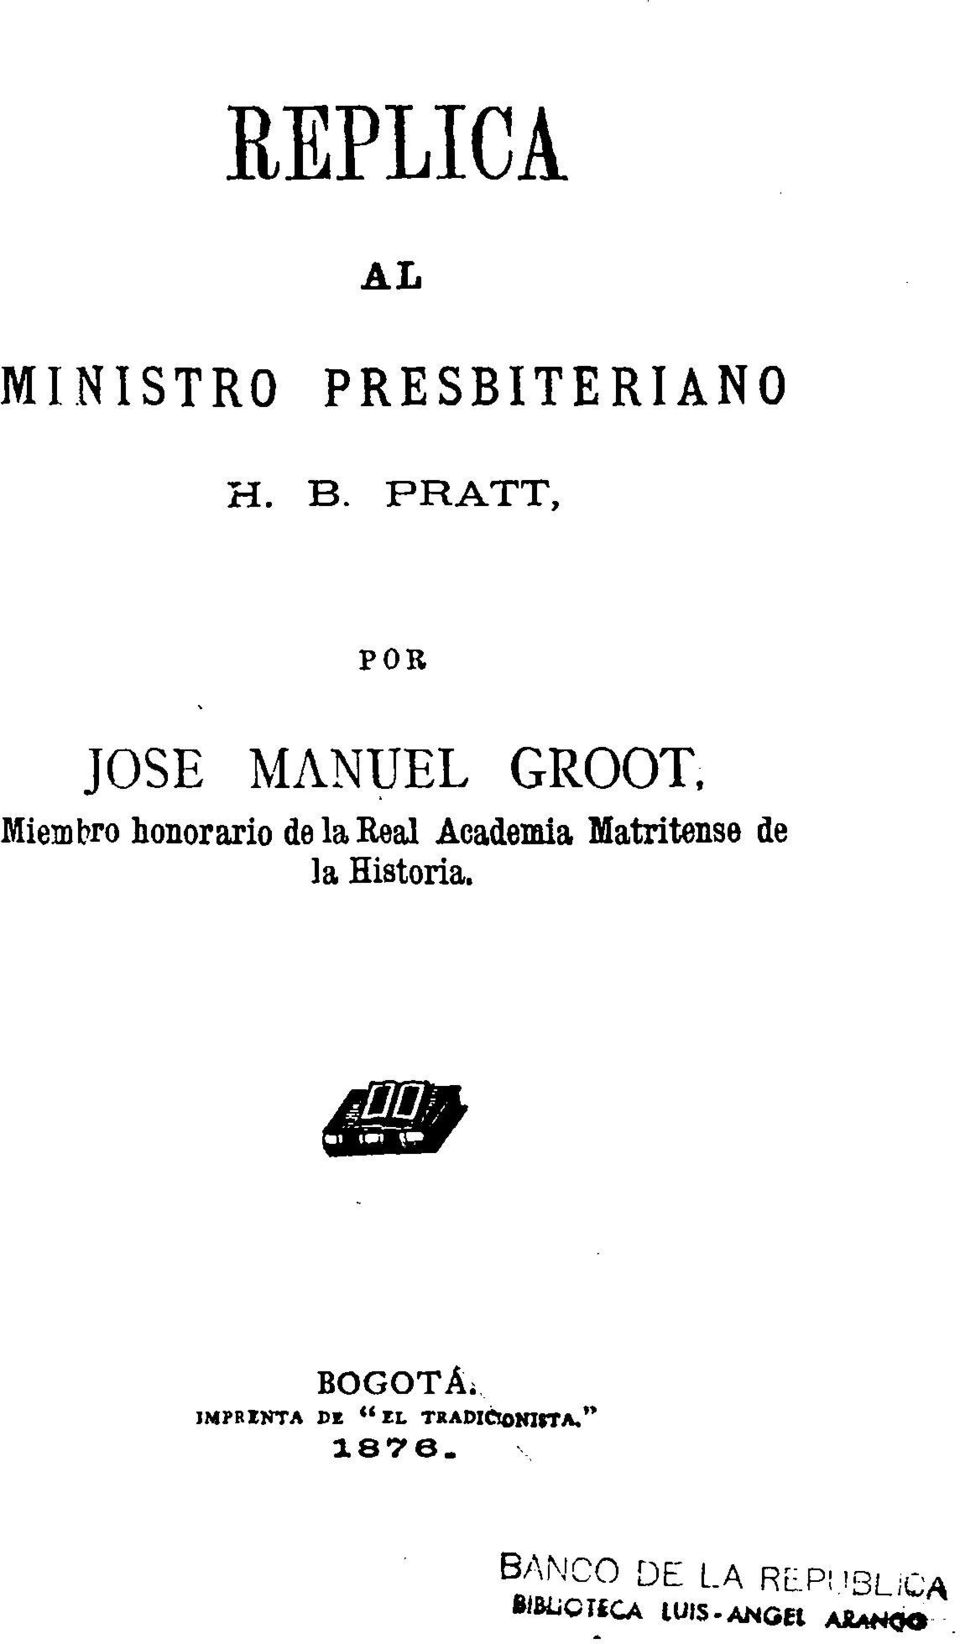 honorario de la Real Academia.